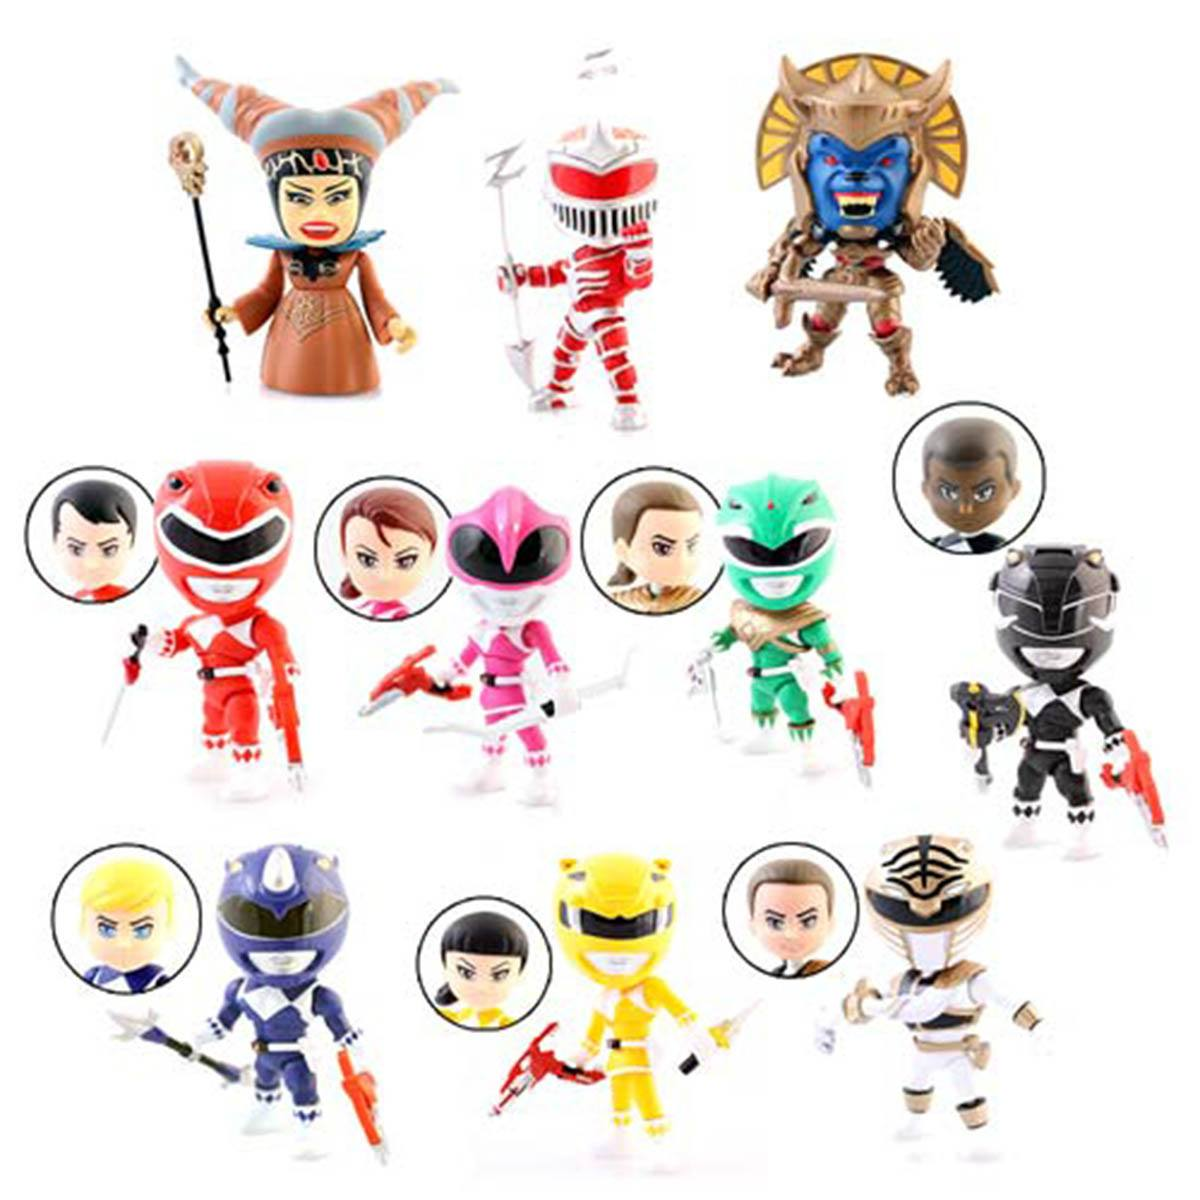 Power Rangers Blind Box Figures Loyal Subjects Toys